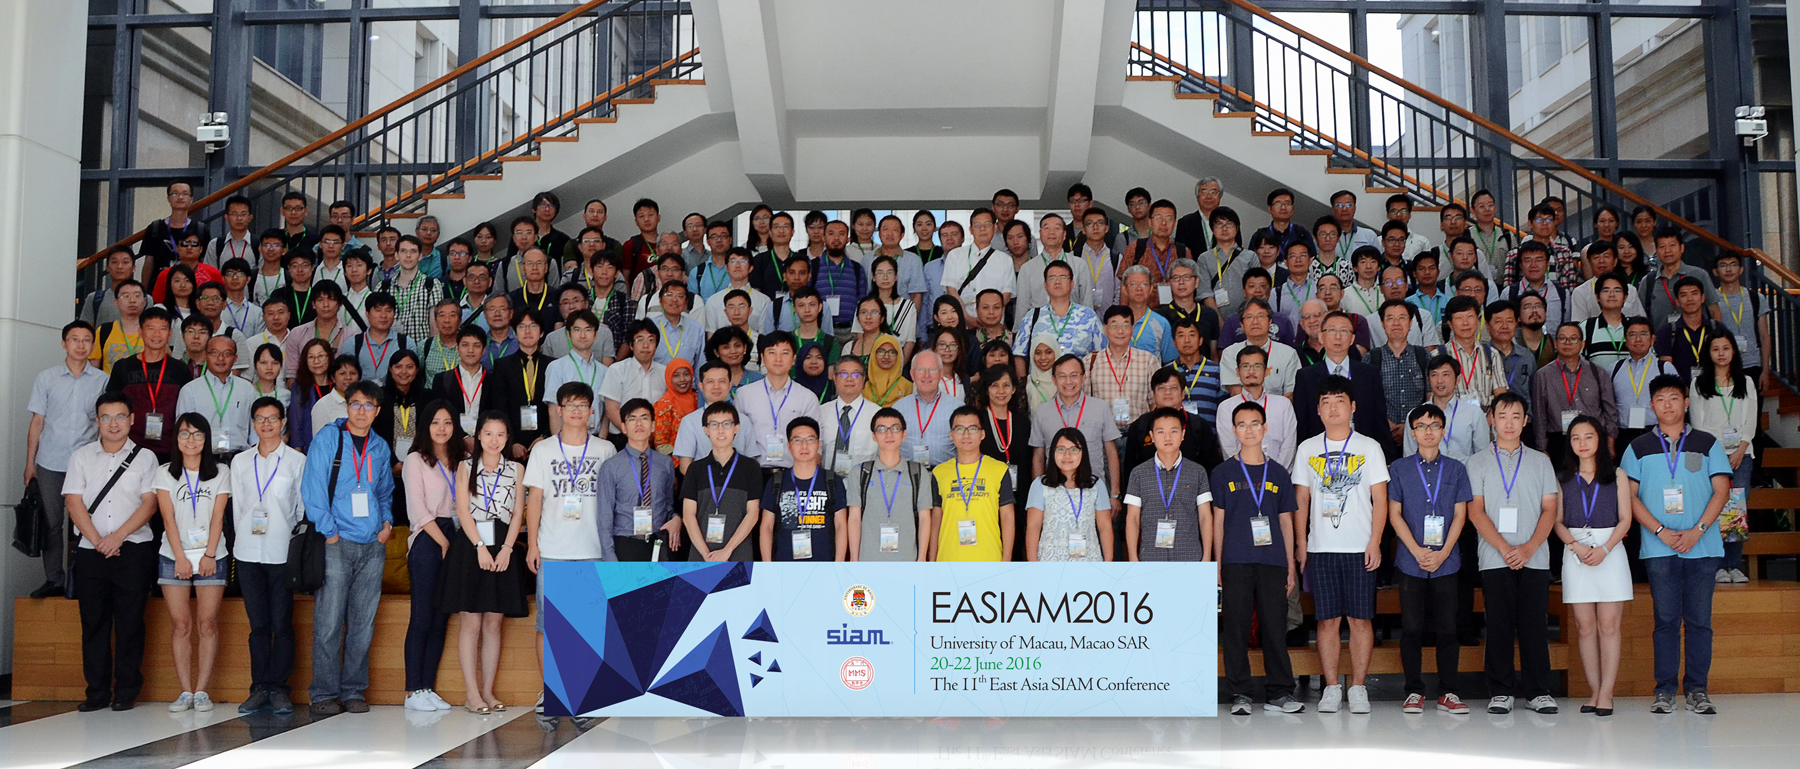 Prof Jin Xiaoqing has been elected president of the East Asia Section of Society for Industrial and Applied Mathematics